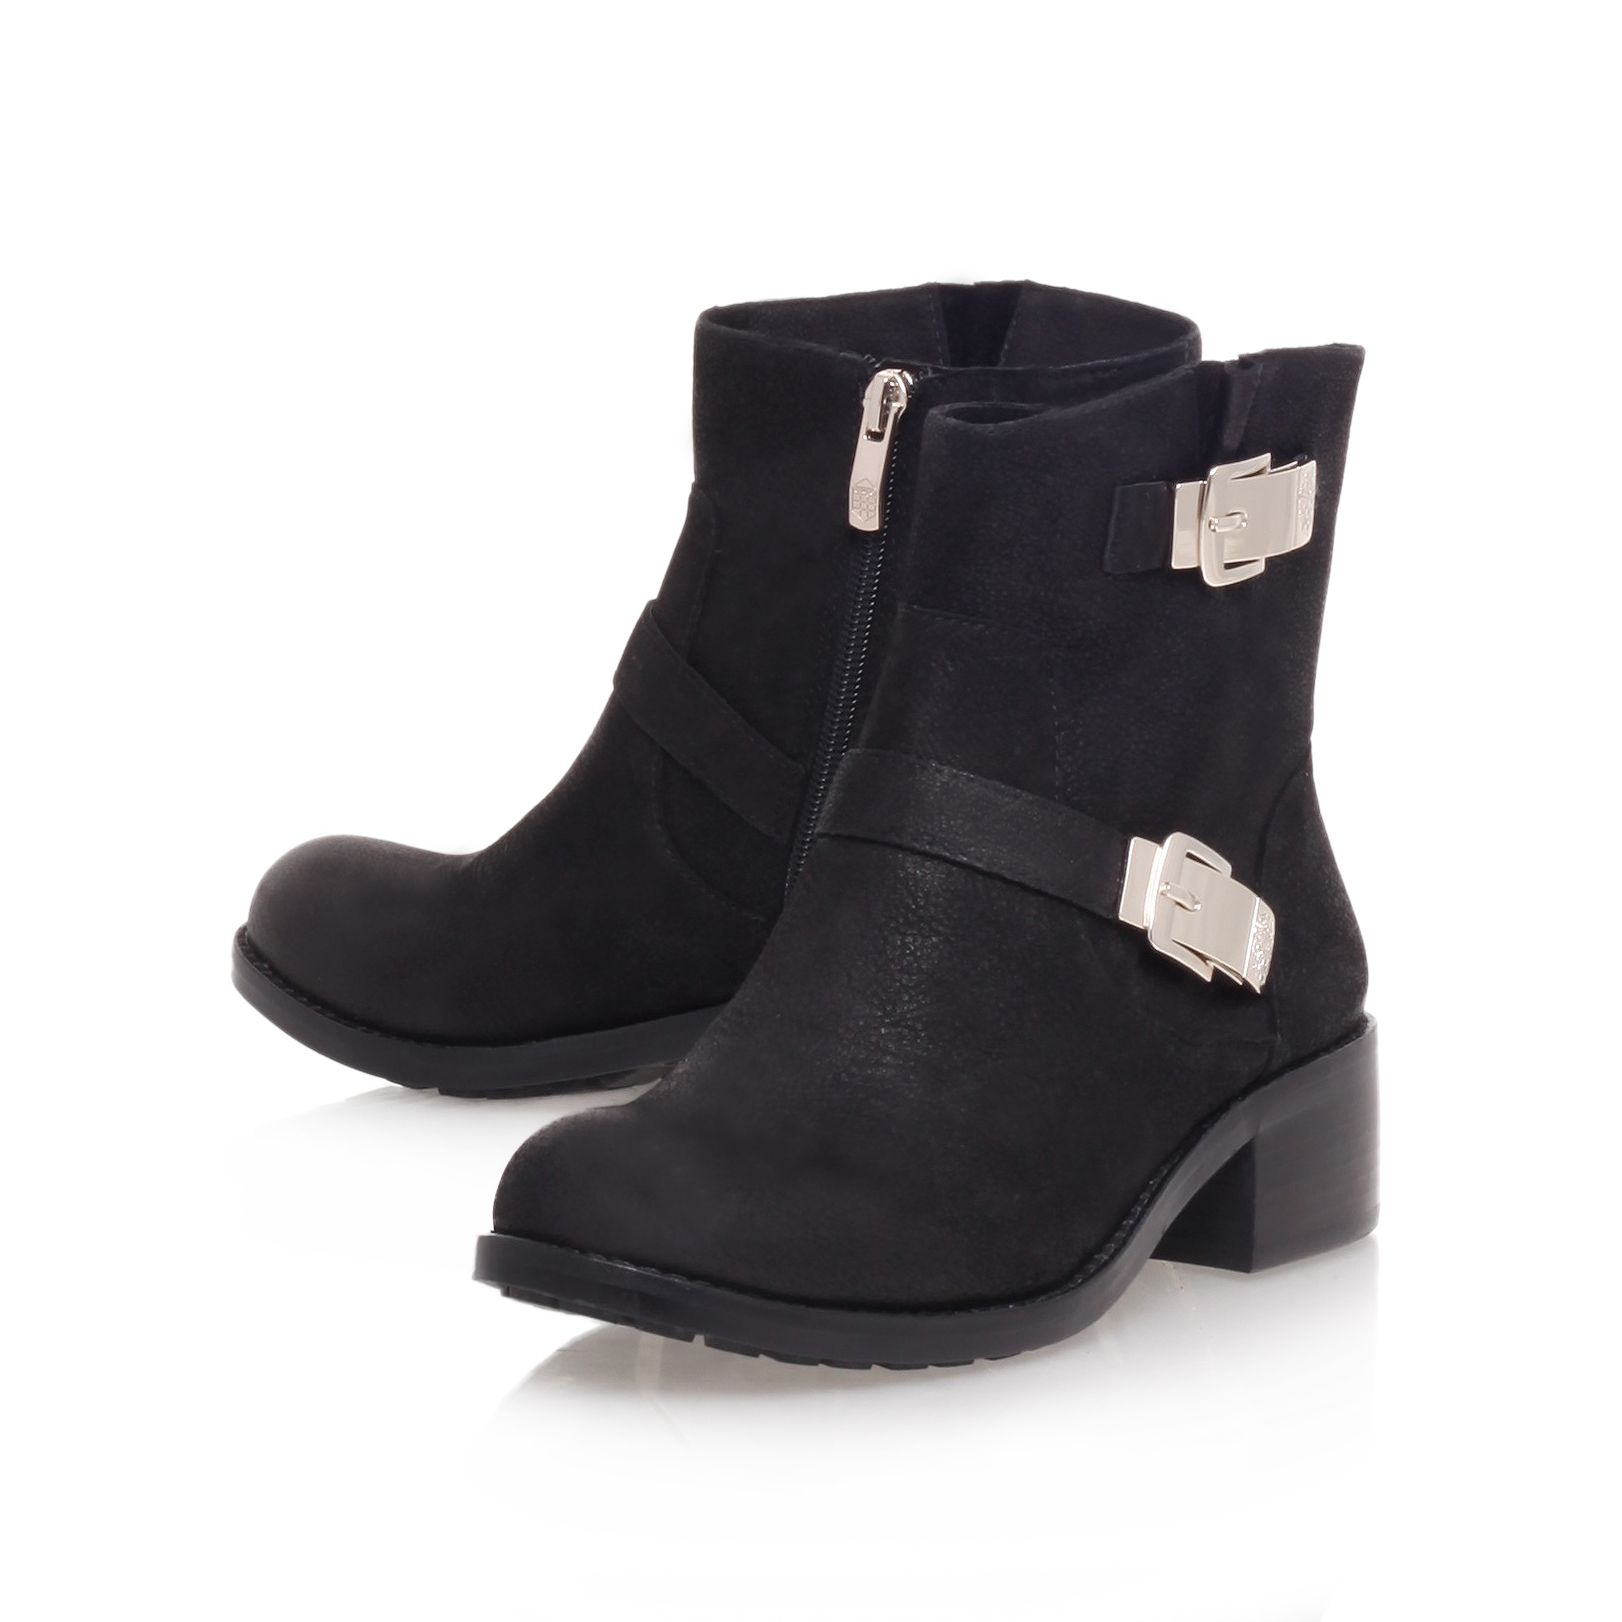 Wintra low heel ankle boots